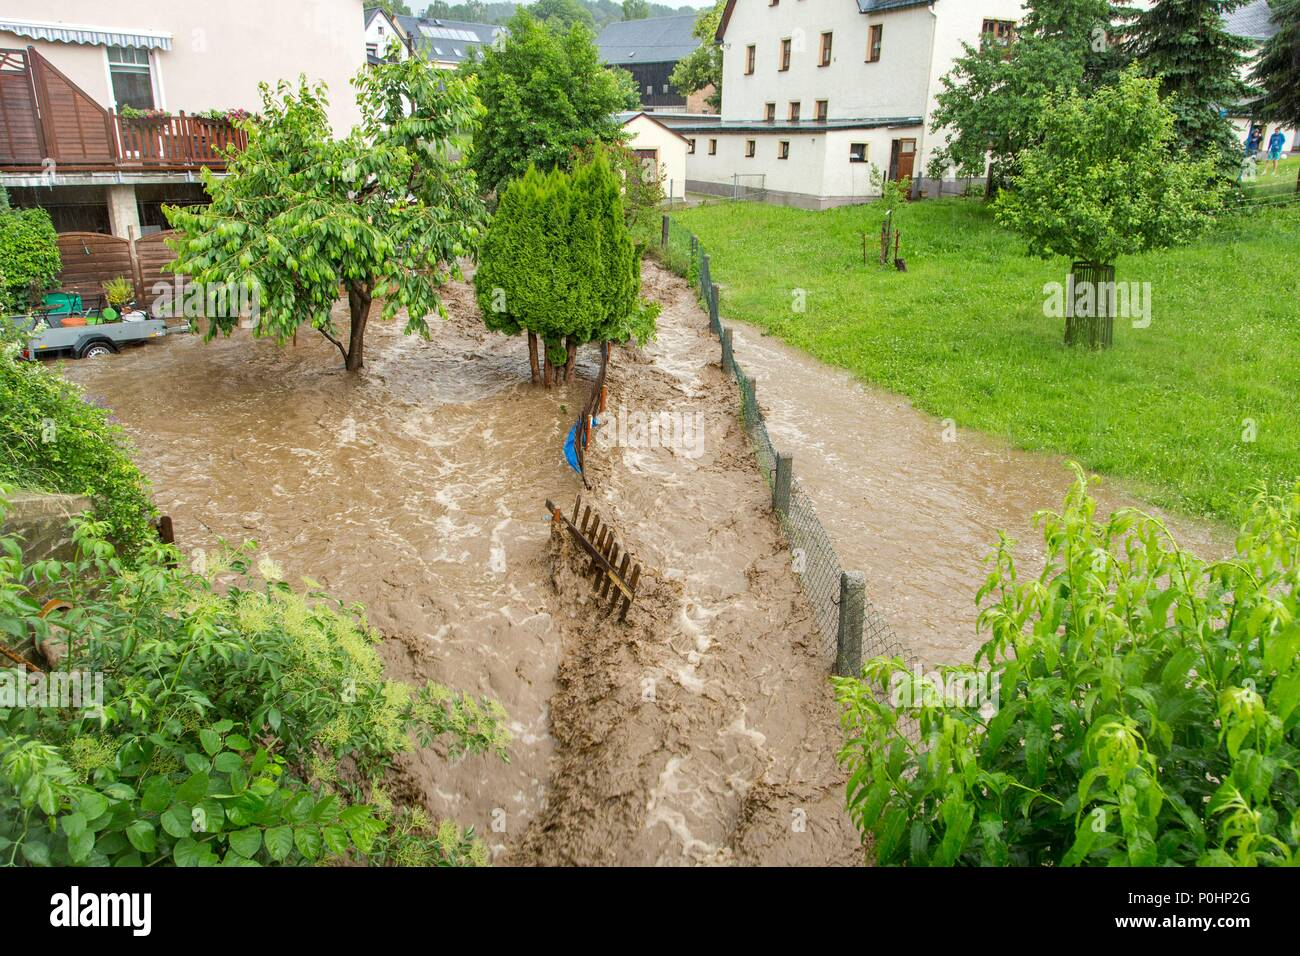 09 June 2018, Germany, Gehringswalde: Brown water masses force their way through streets after heavy rainfalls occurred in the region. Photo: Andre März/dpa-Zentralbild/dpa Stock Photo